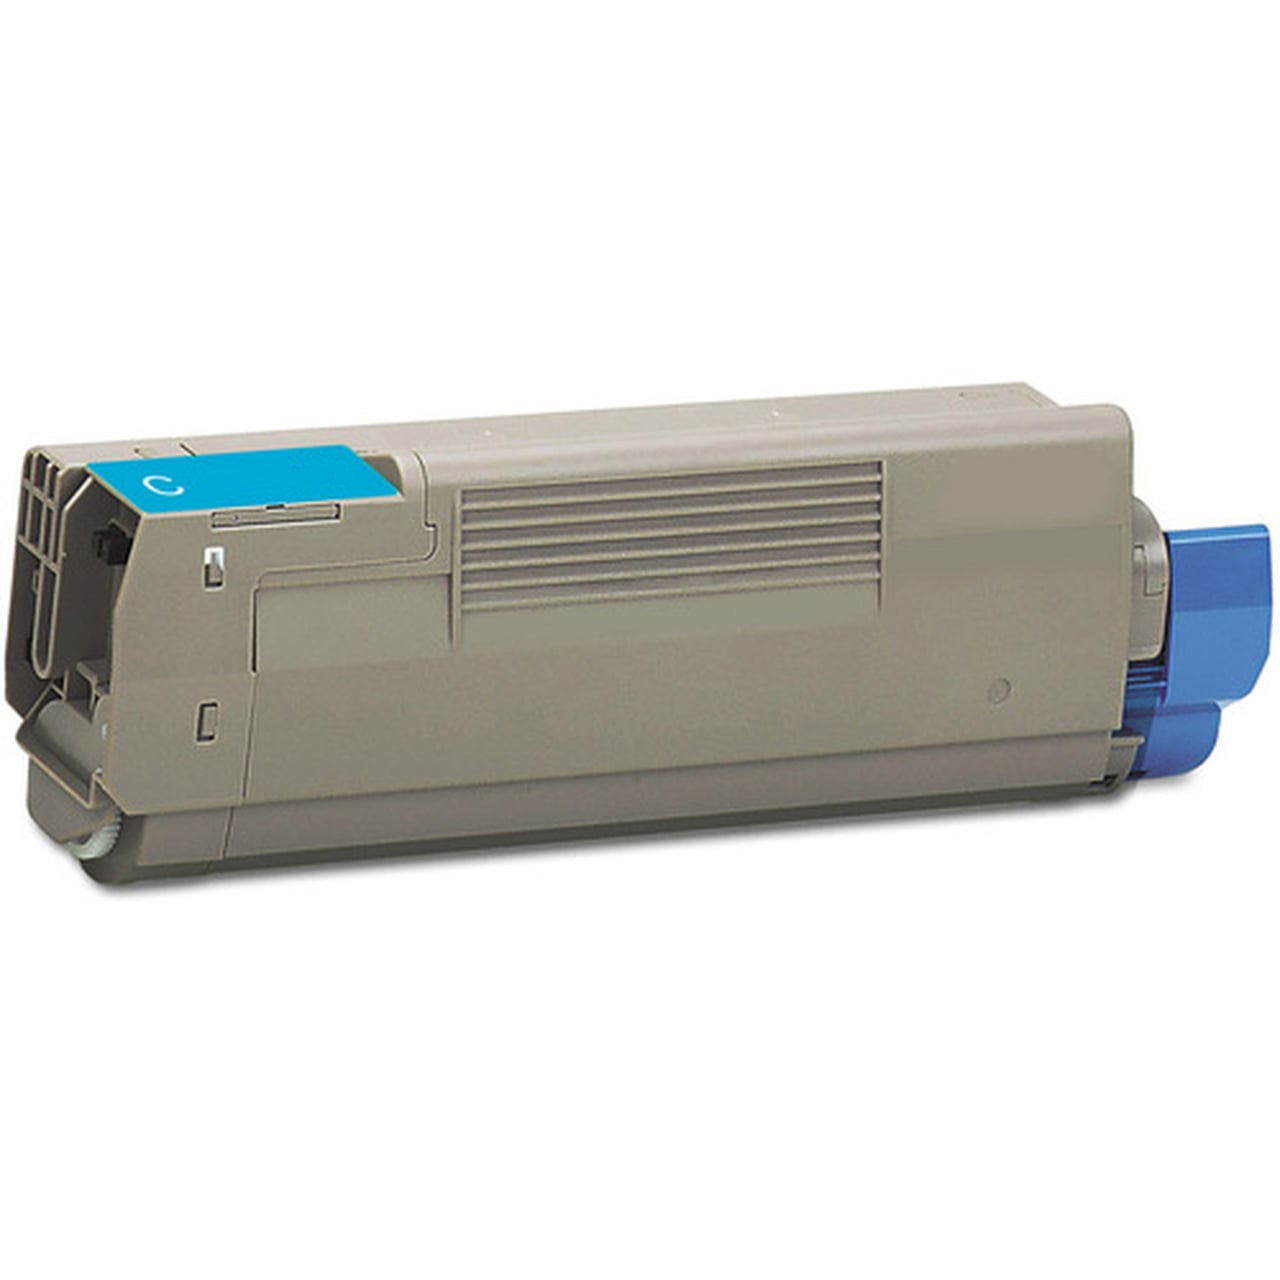 43324403 Toner Cartridge - Okidata New Compatible  (Cyan)